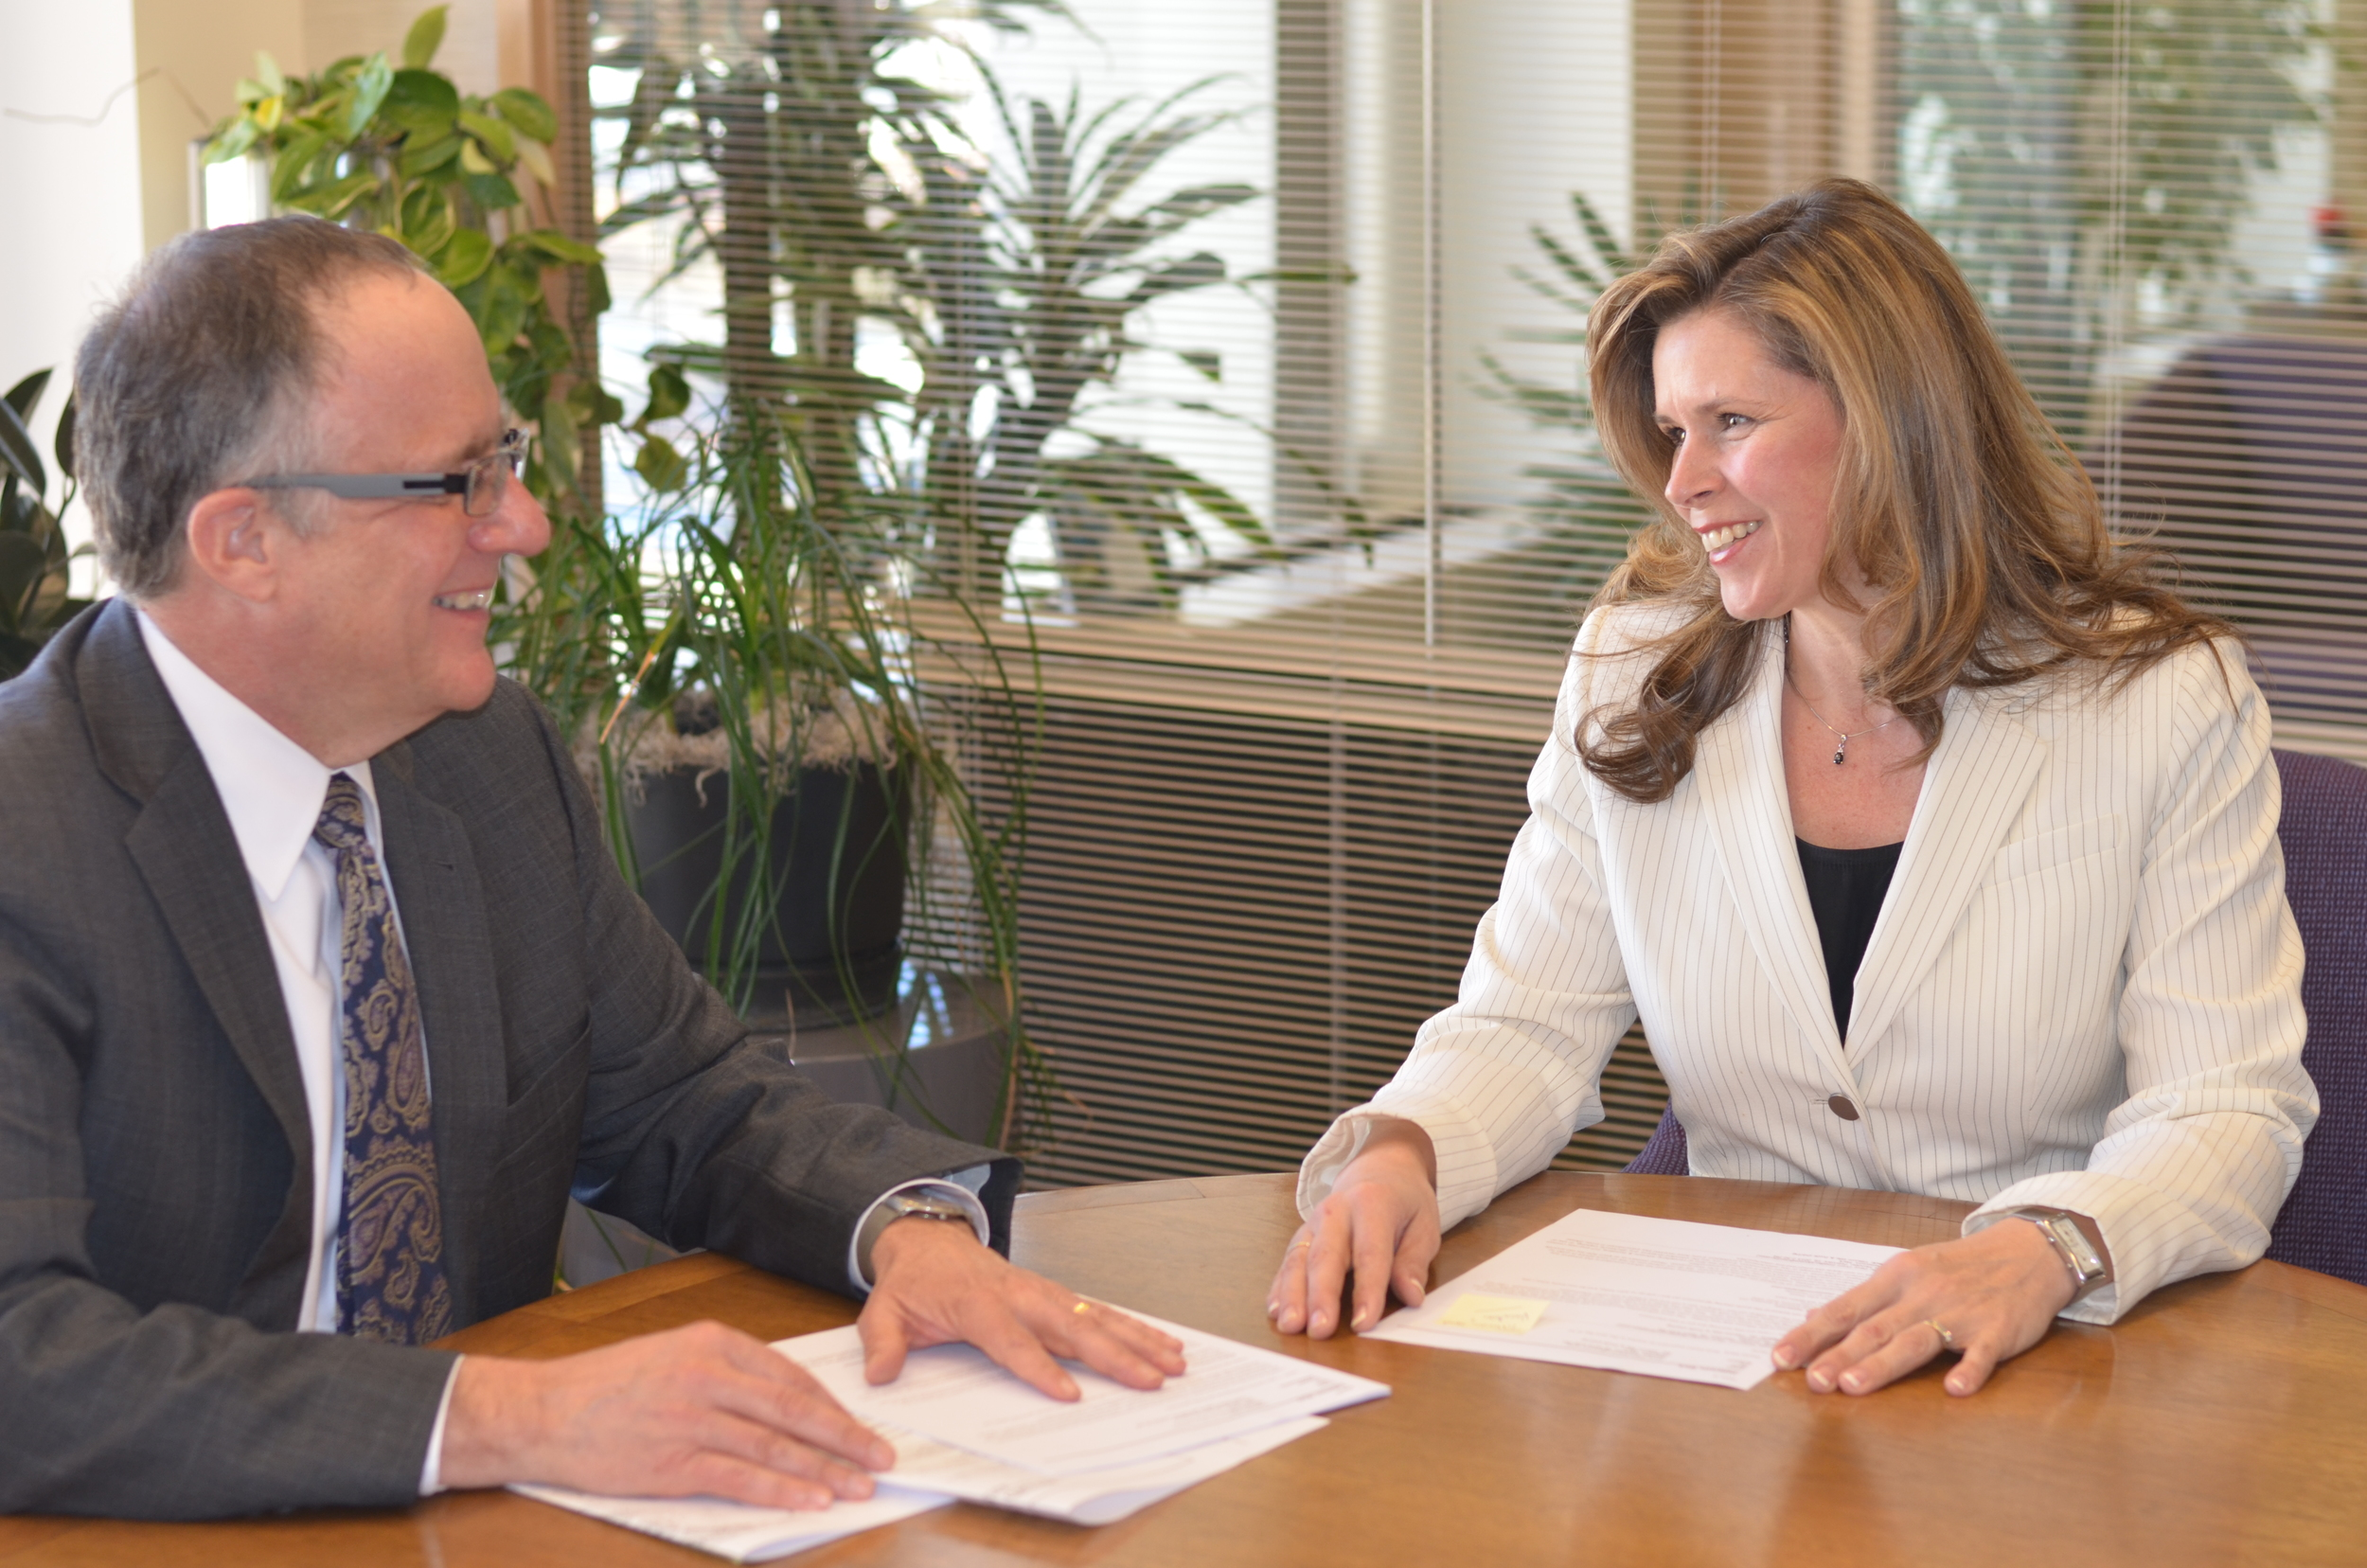 Marlo DeLange and Mark Patterson both represent clients in business matters.